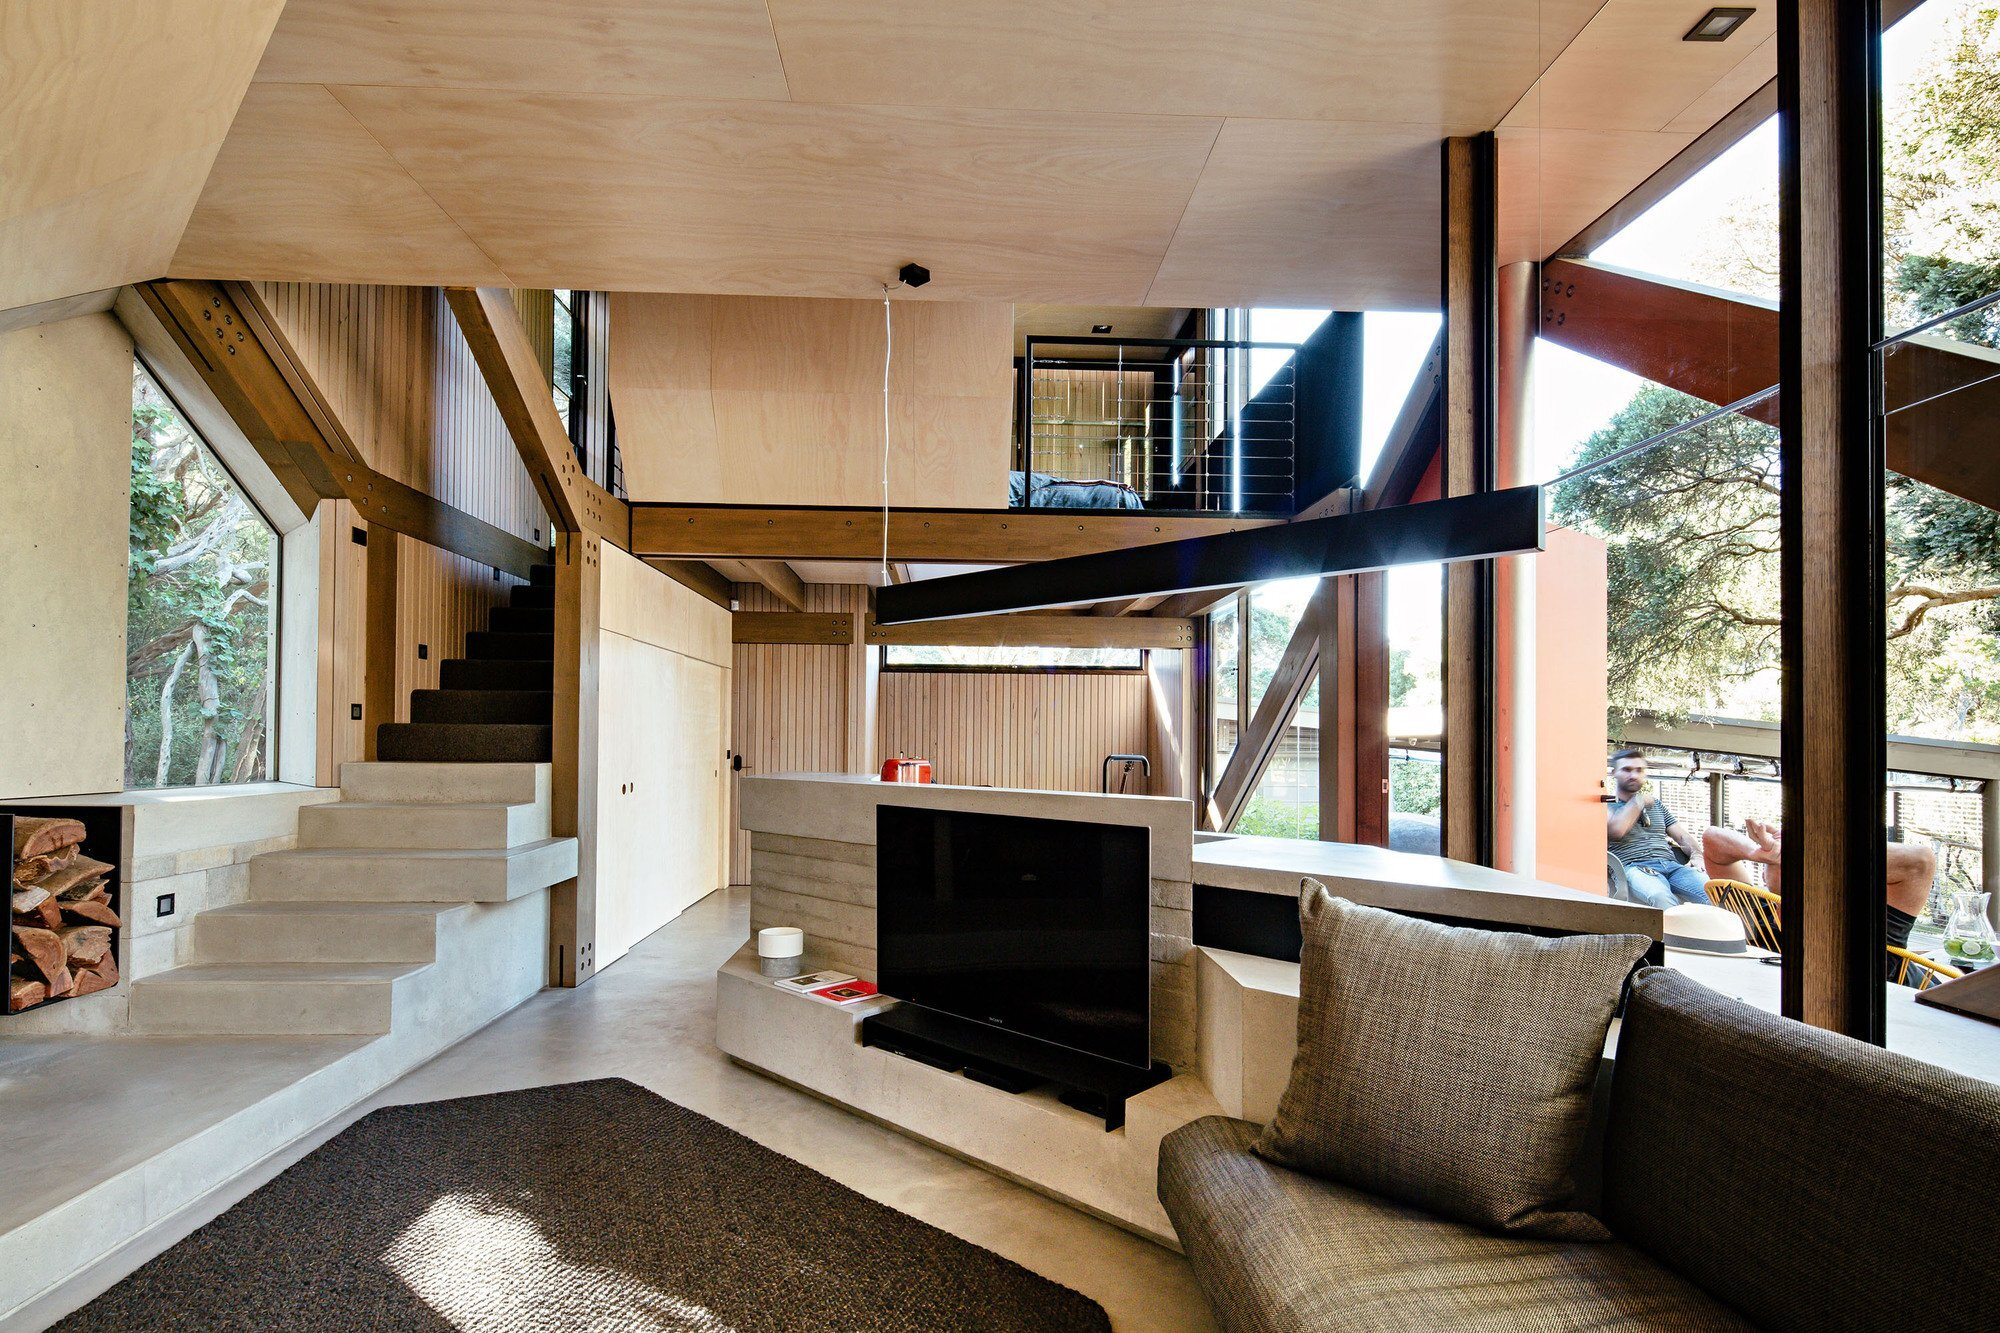 cabin 2 small house maddison architects australia living area humble homes - Contemporary Small Houses